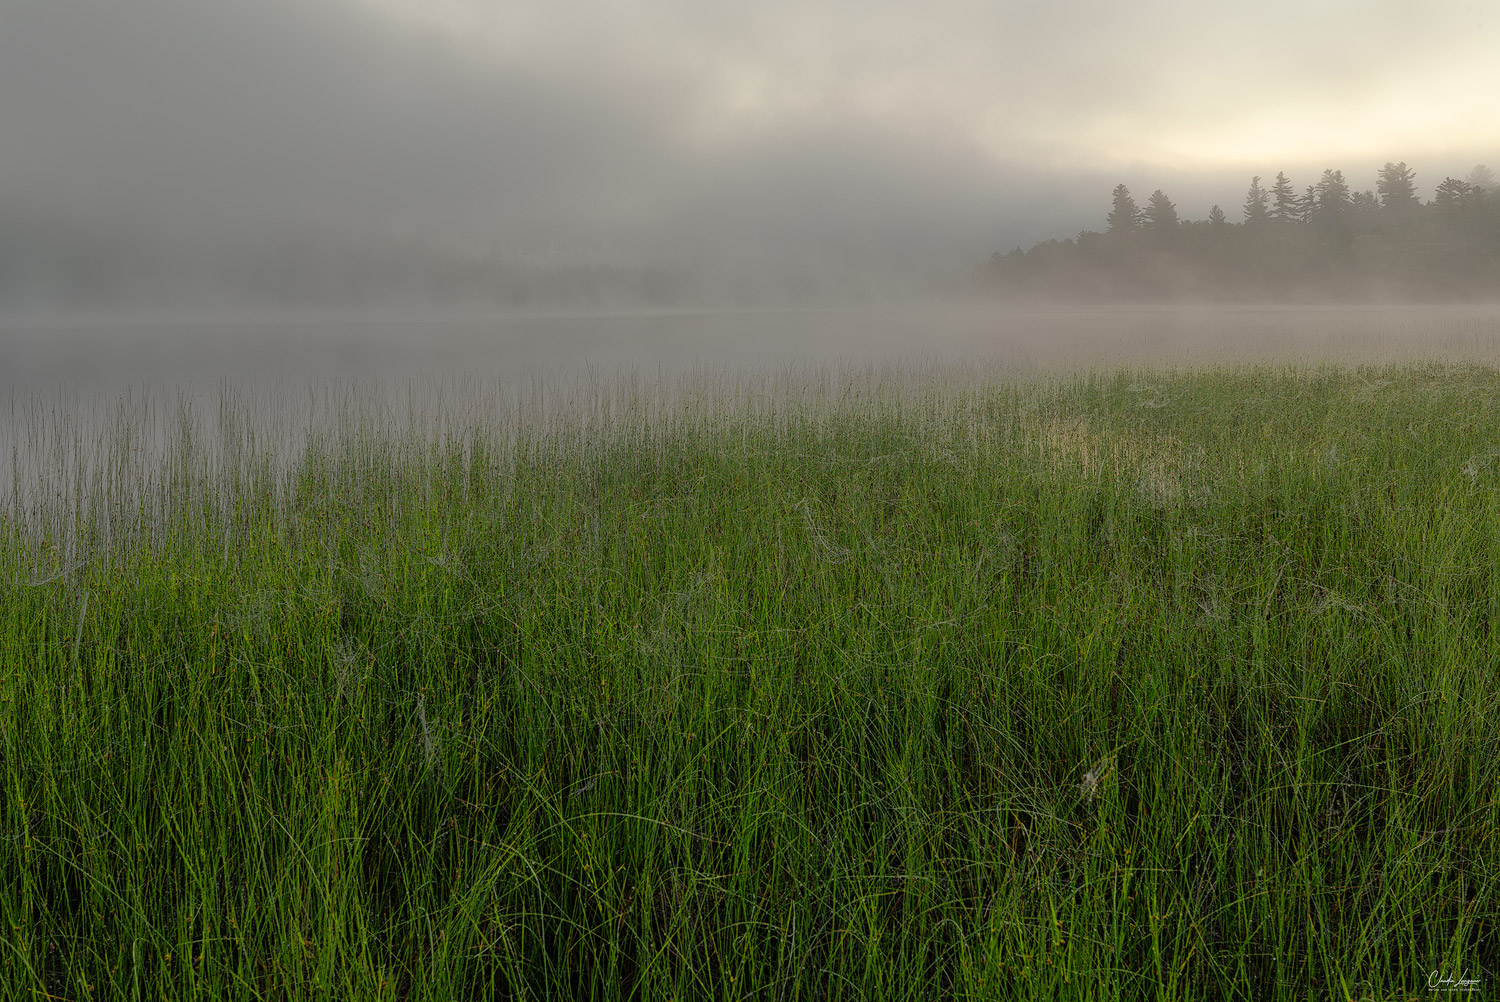 Connery Pond in the Adirondacks at sunrise.